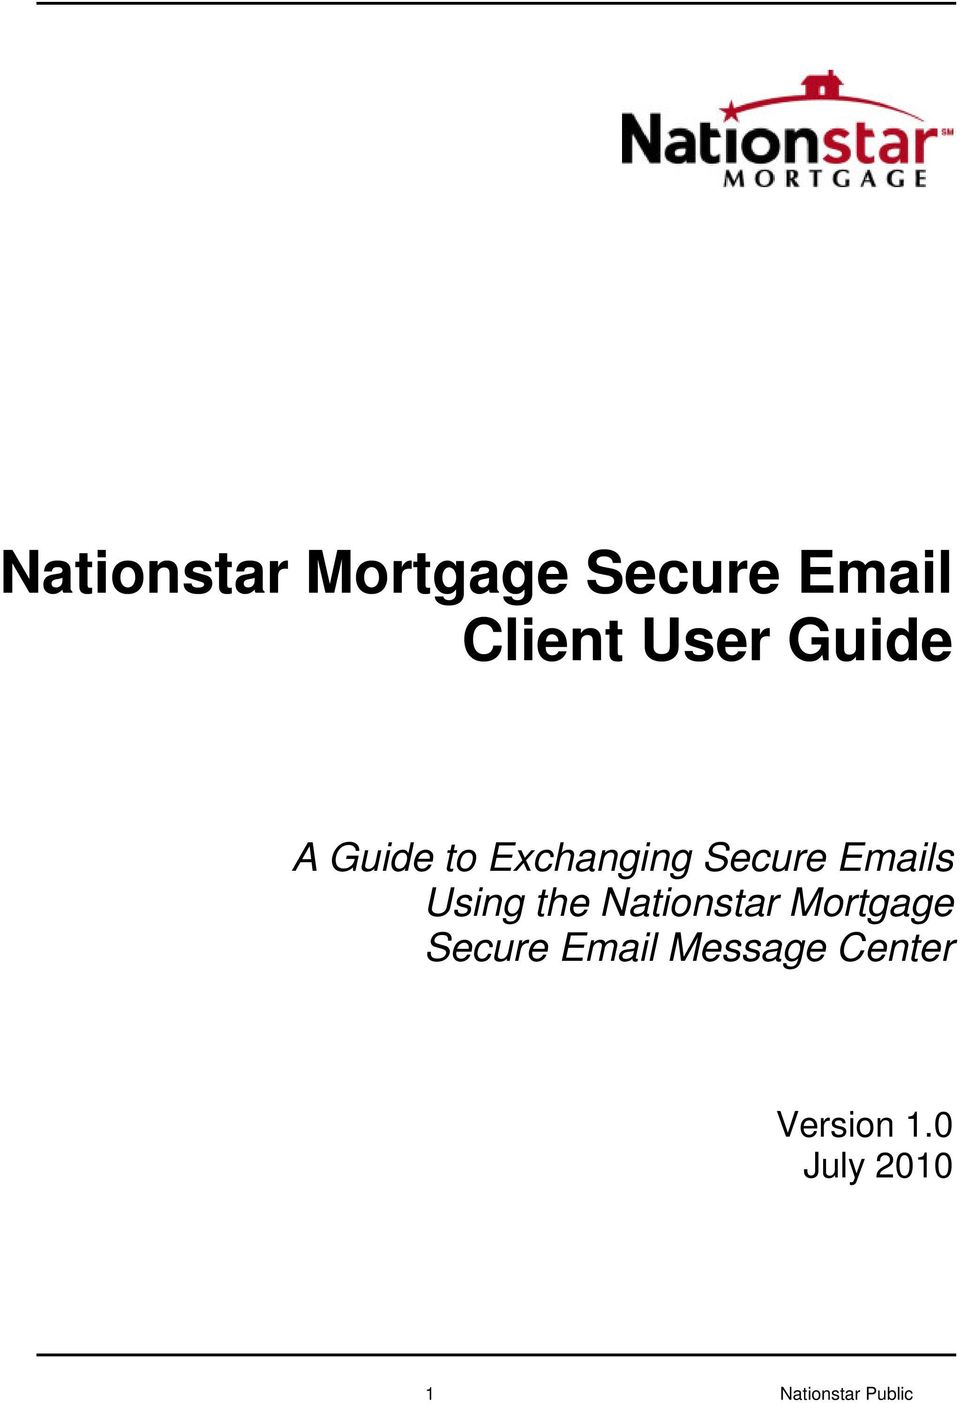 Using the Nationstar Mortgage Secure Email